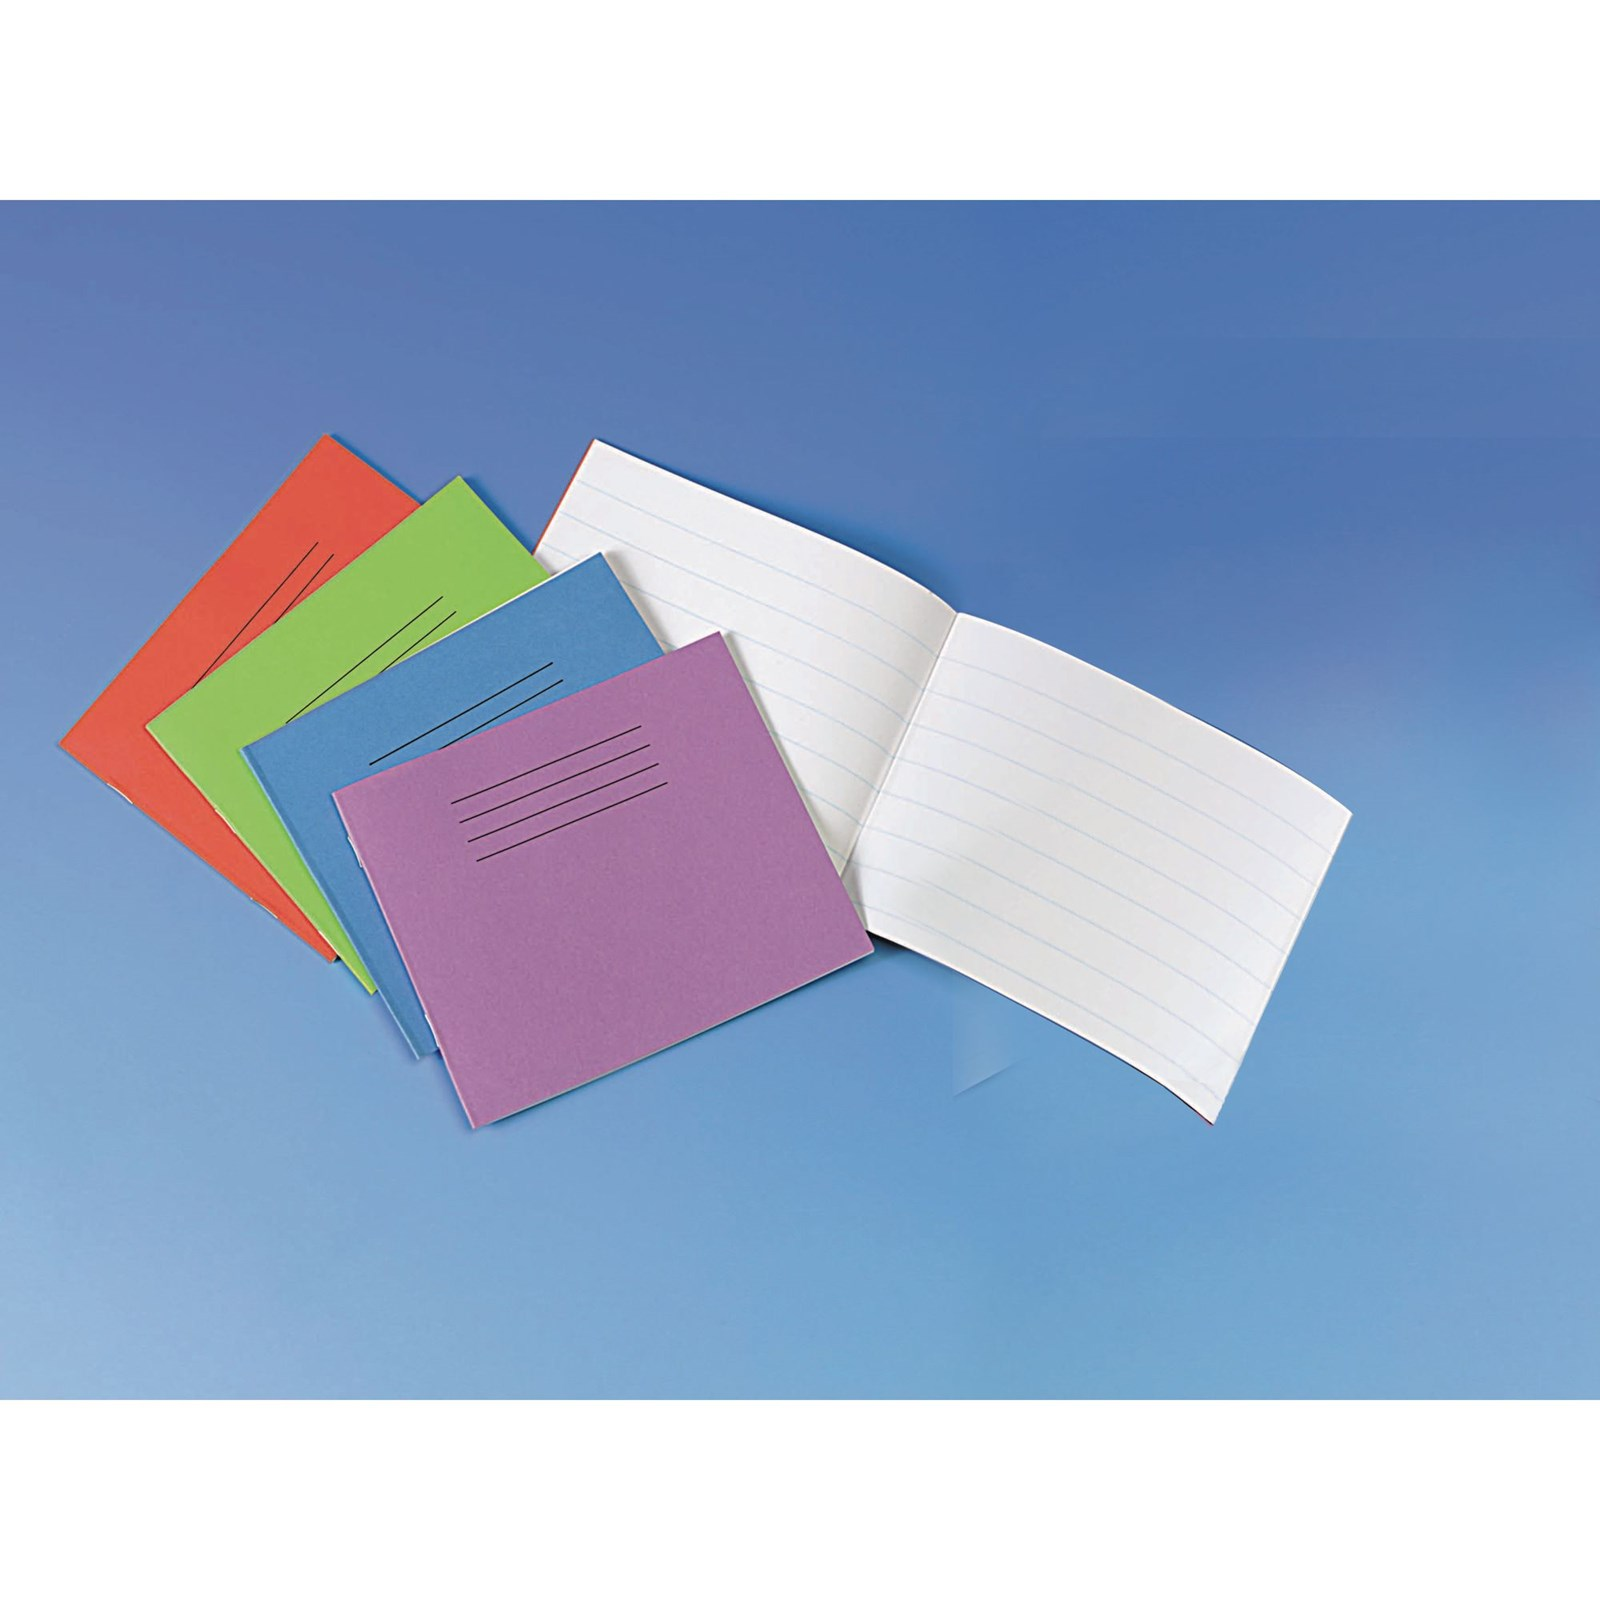 """Vivid Blue 5.25x6.5"""" Exercise Book 24-Page, 8mm Ruled - Pack of 100"""